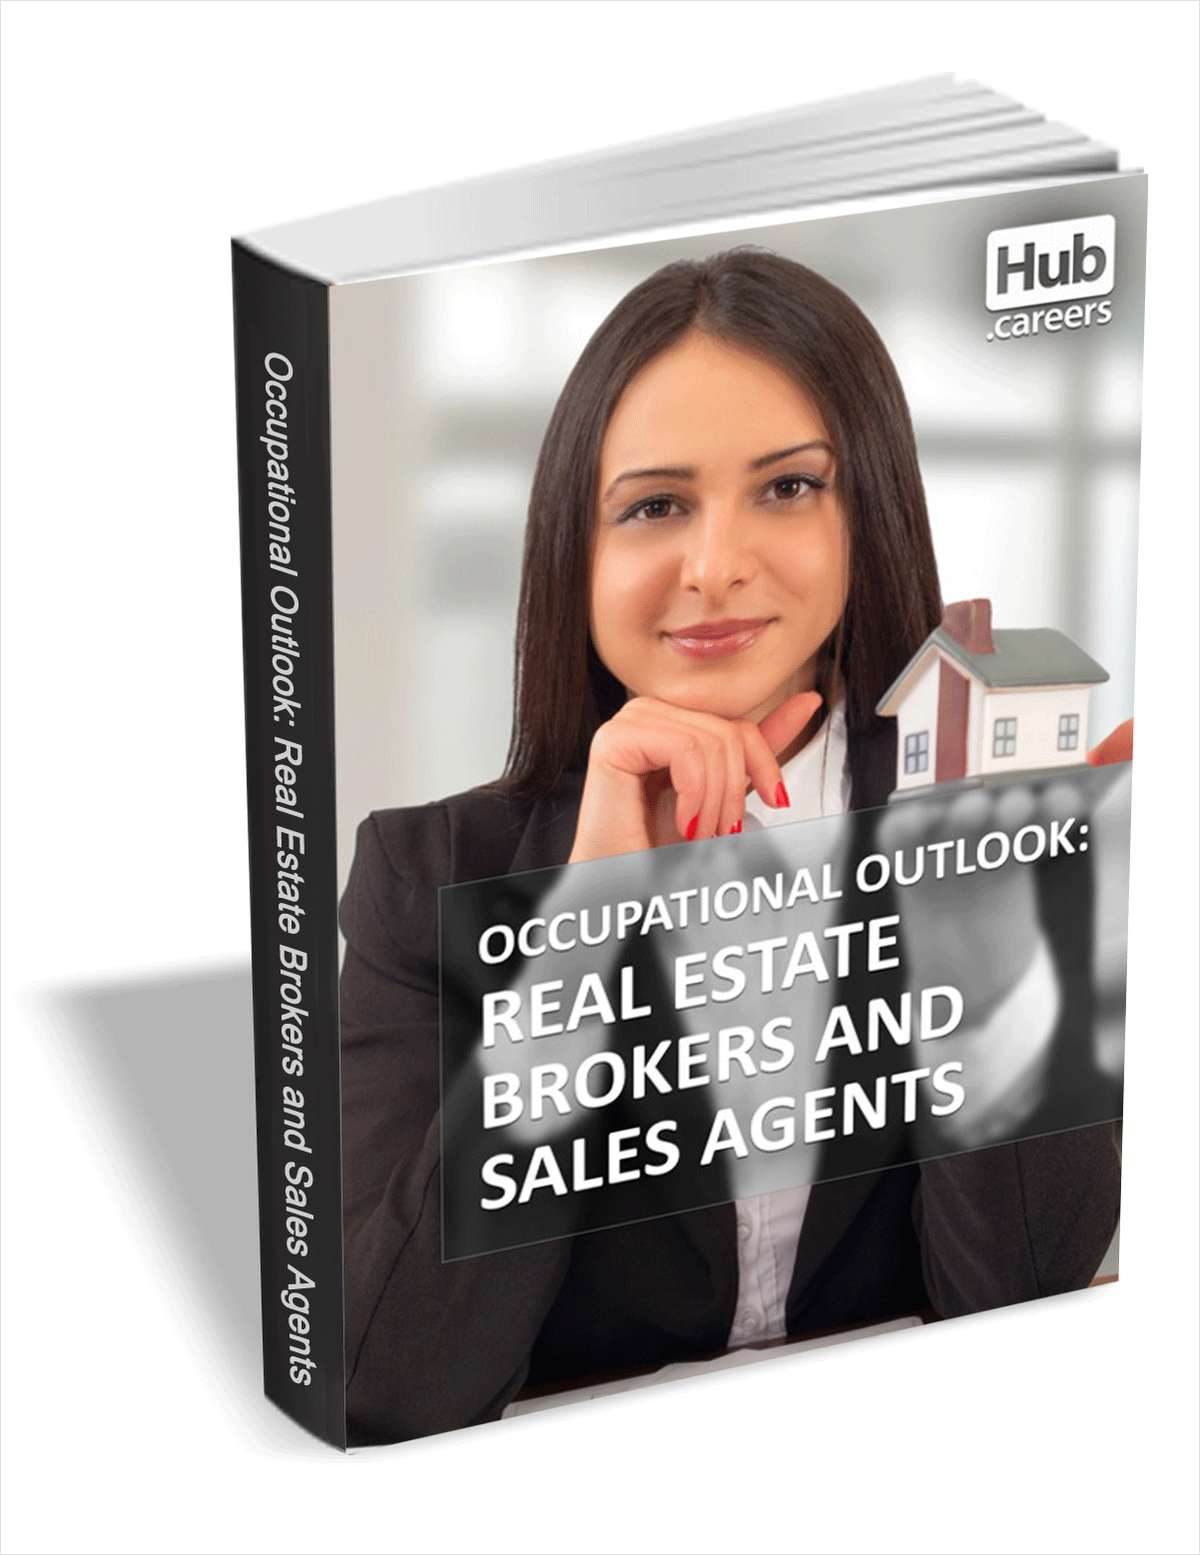 Real Estate Brokers and Sales Agents - Occupational Outlook